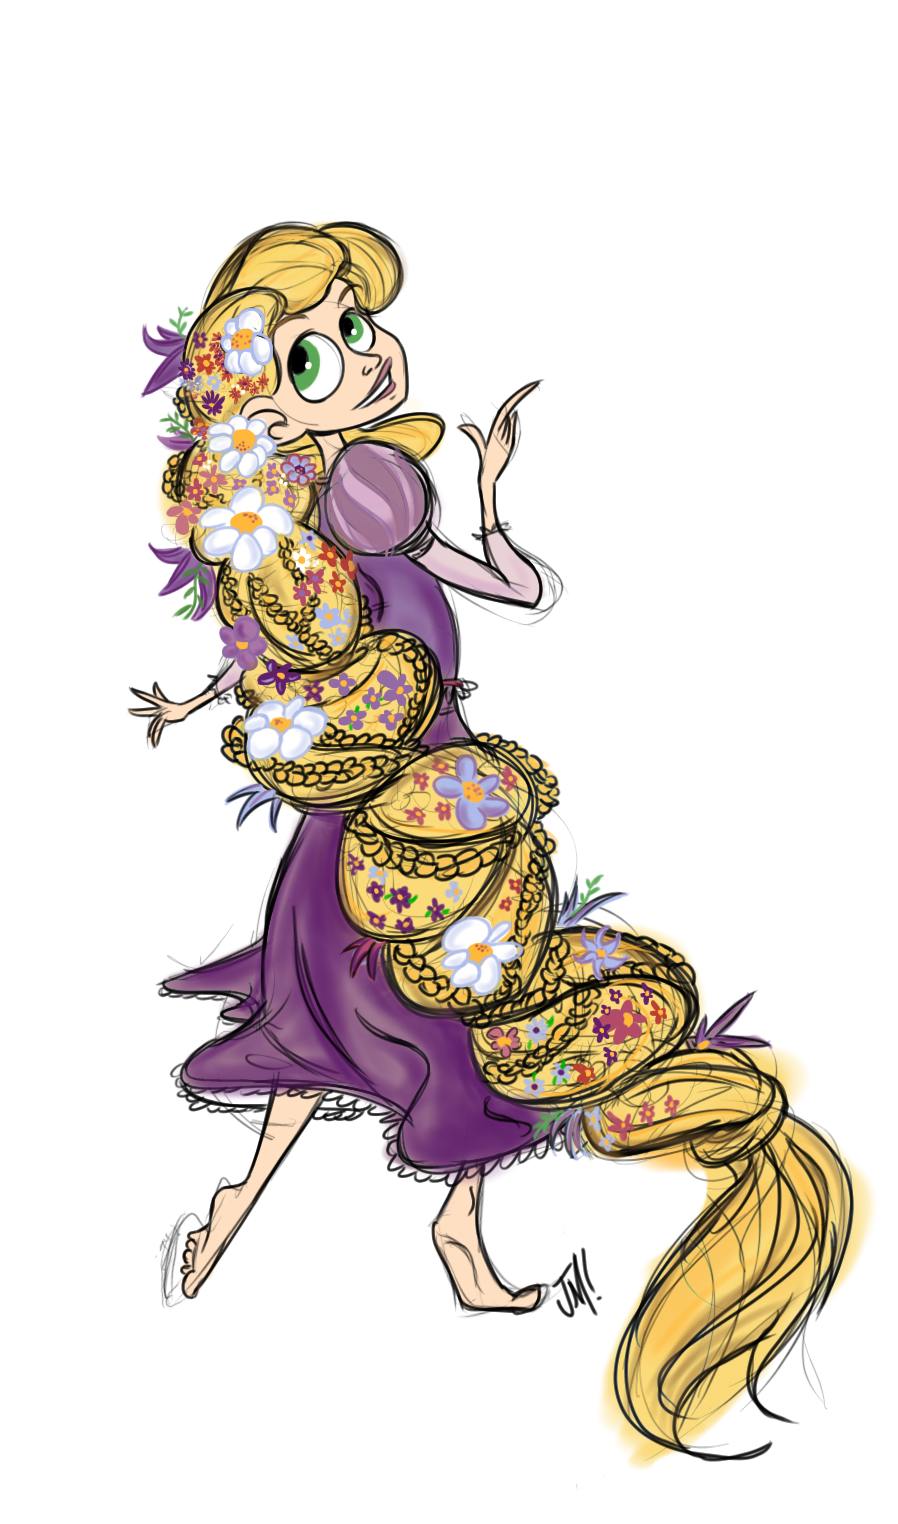 Drawn braid rapunzel Miranda by Rapunzel Jose DeviantArt